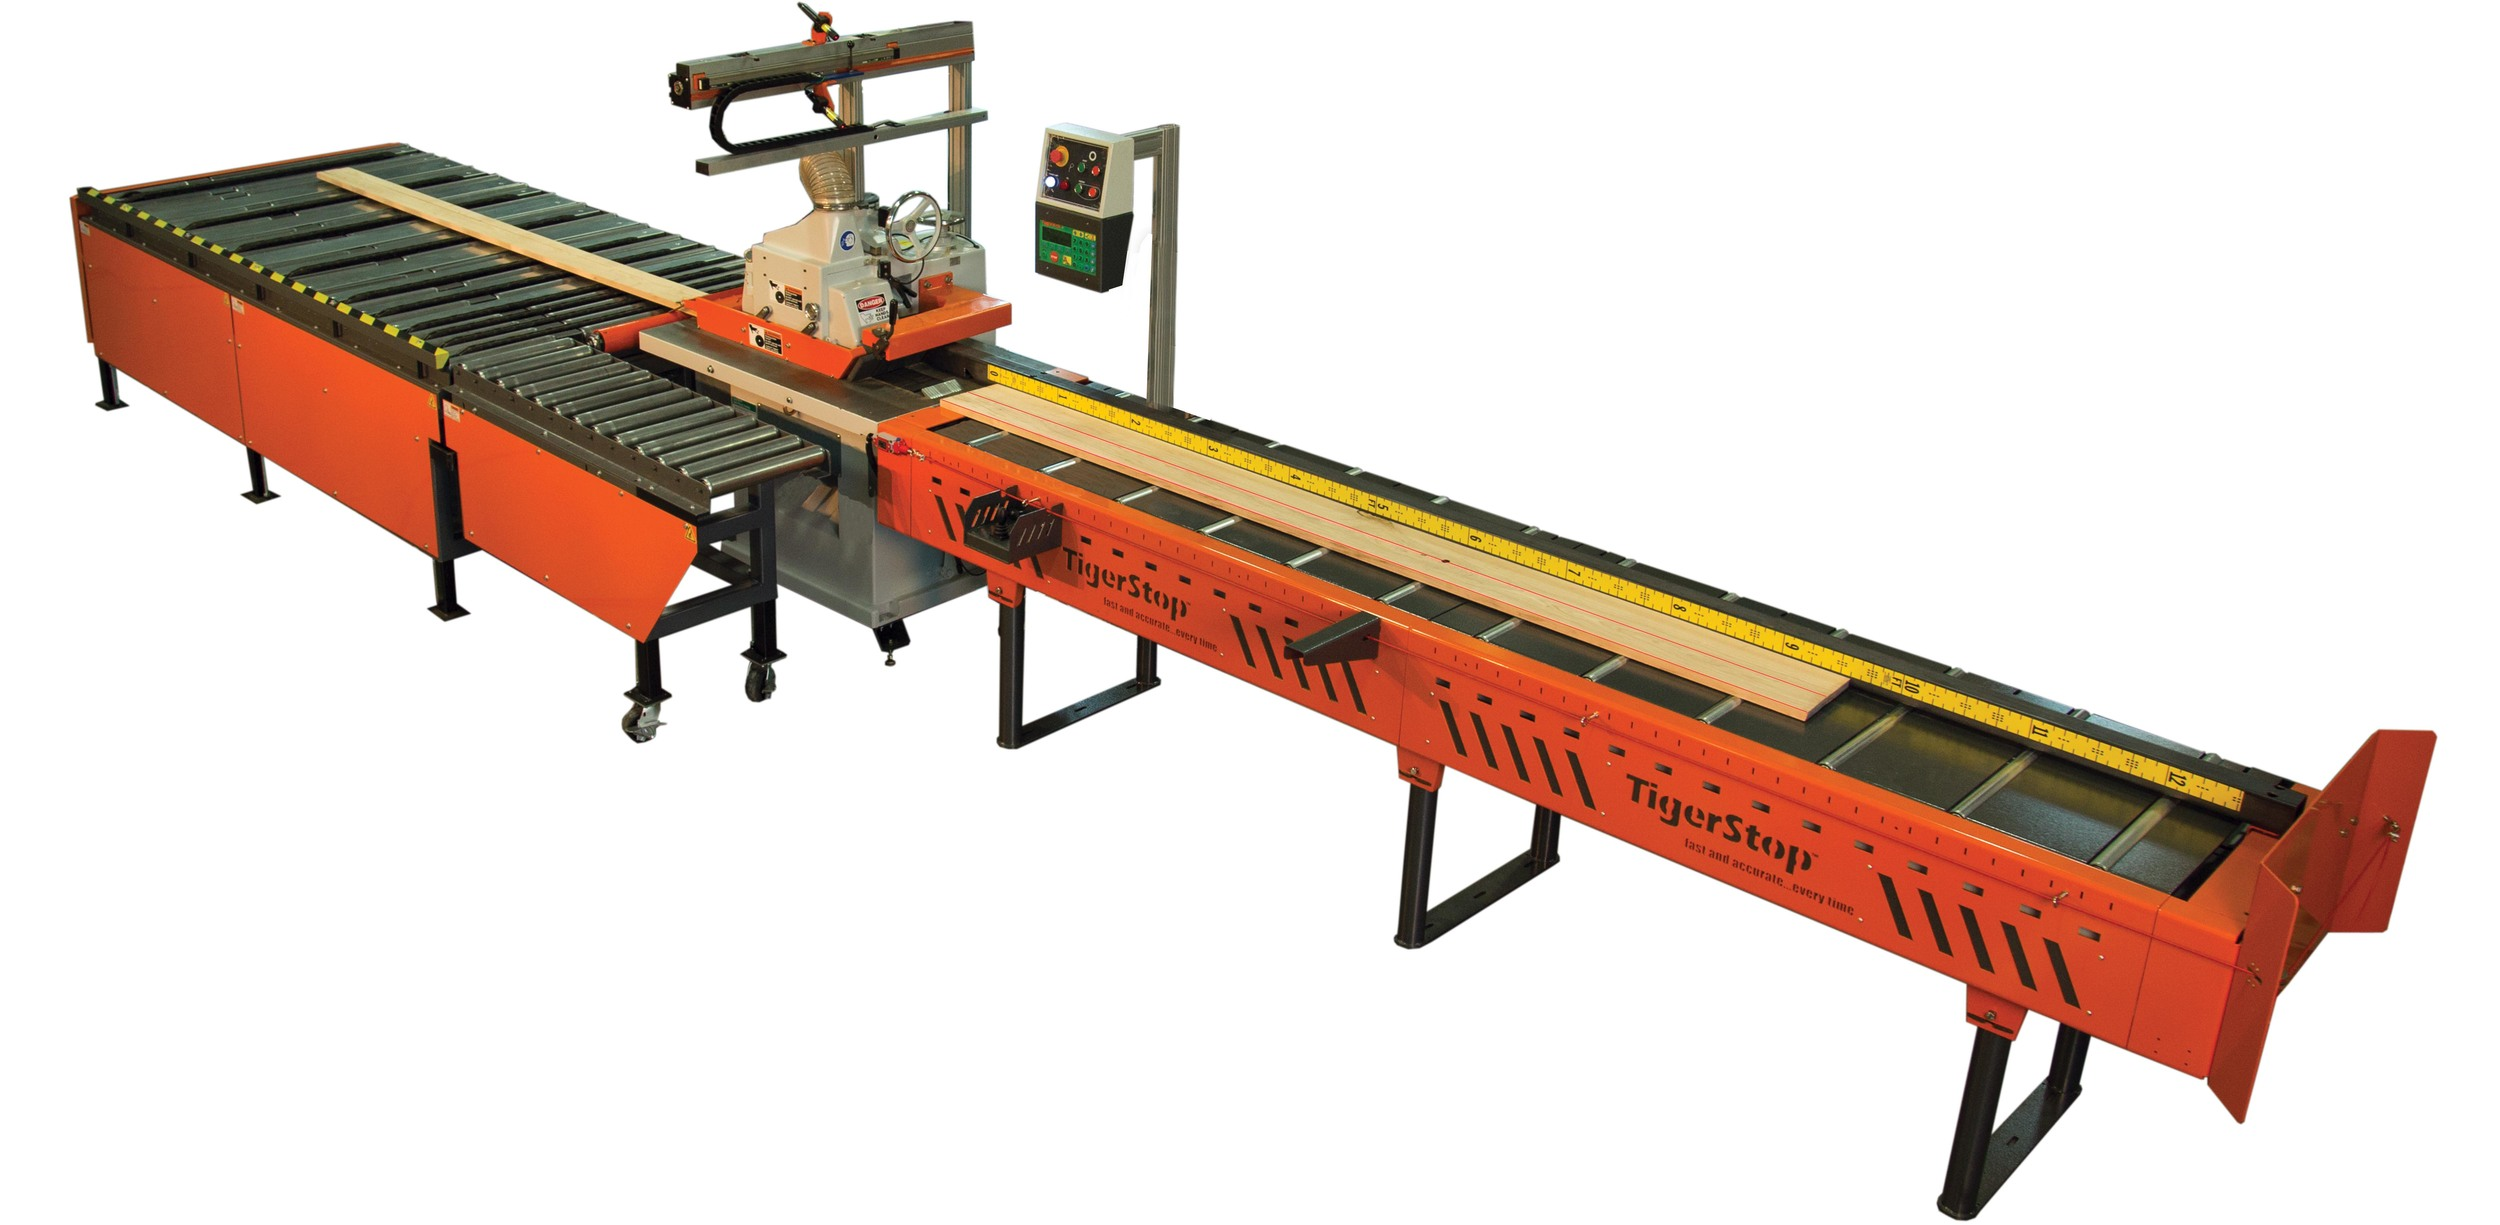 TigerRip 1000 - This straight line rip saw system provides the features of much larger systems, giving you glue line accuracy and significantly improved yield.